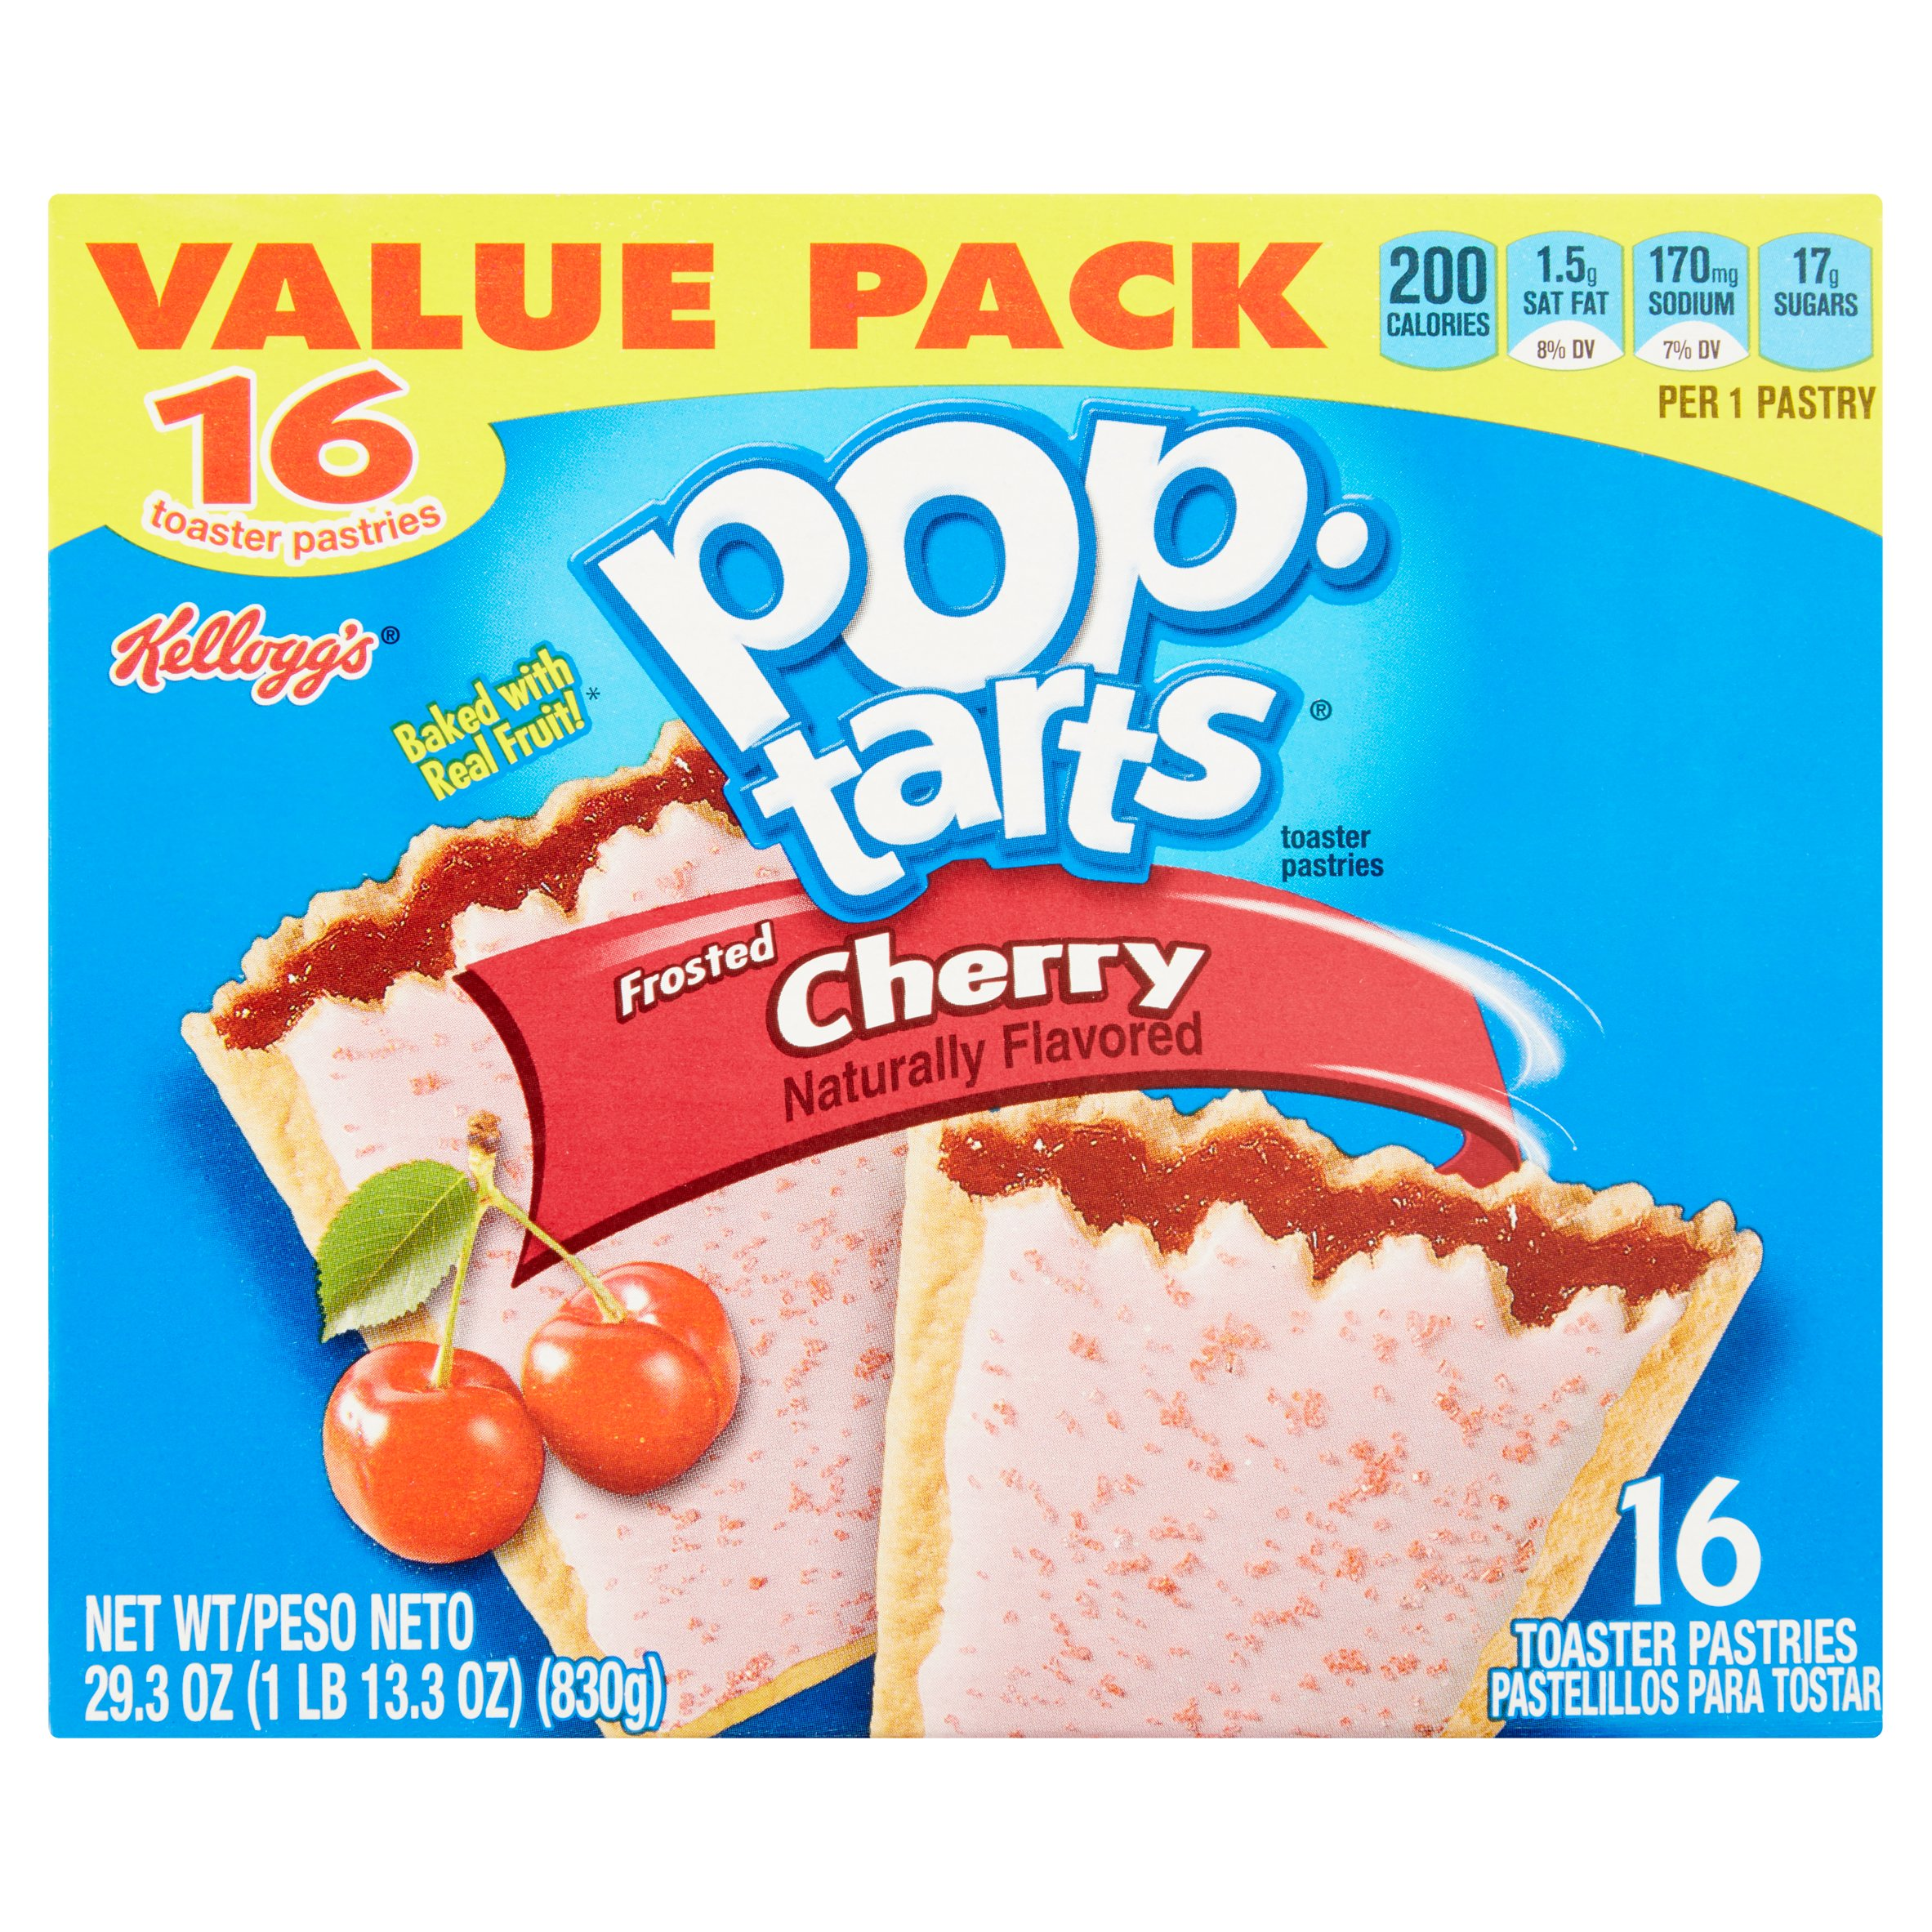 Kellogg's Pop - Tarts Frosted Cherry 16 Toaster Pastries Value Pack 29.3 oz